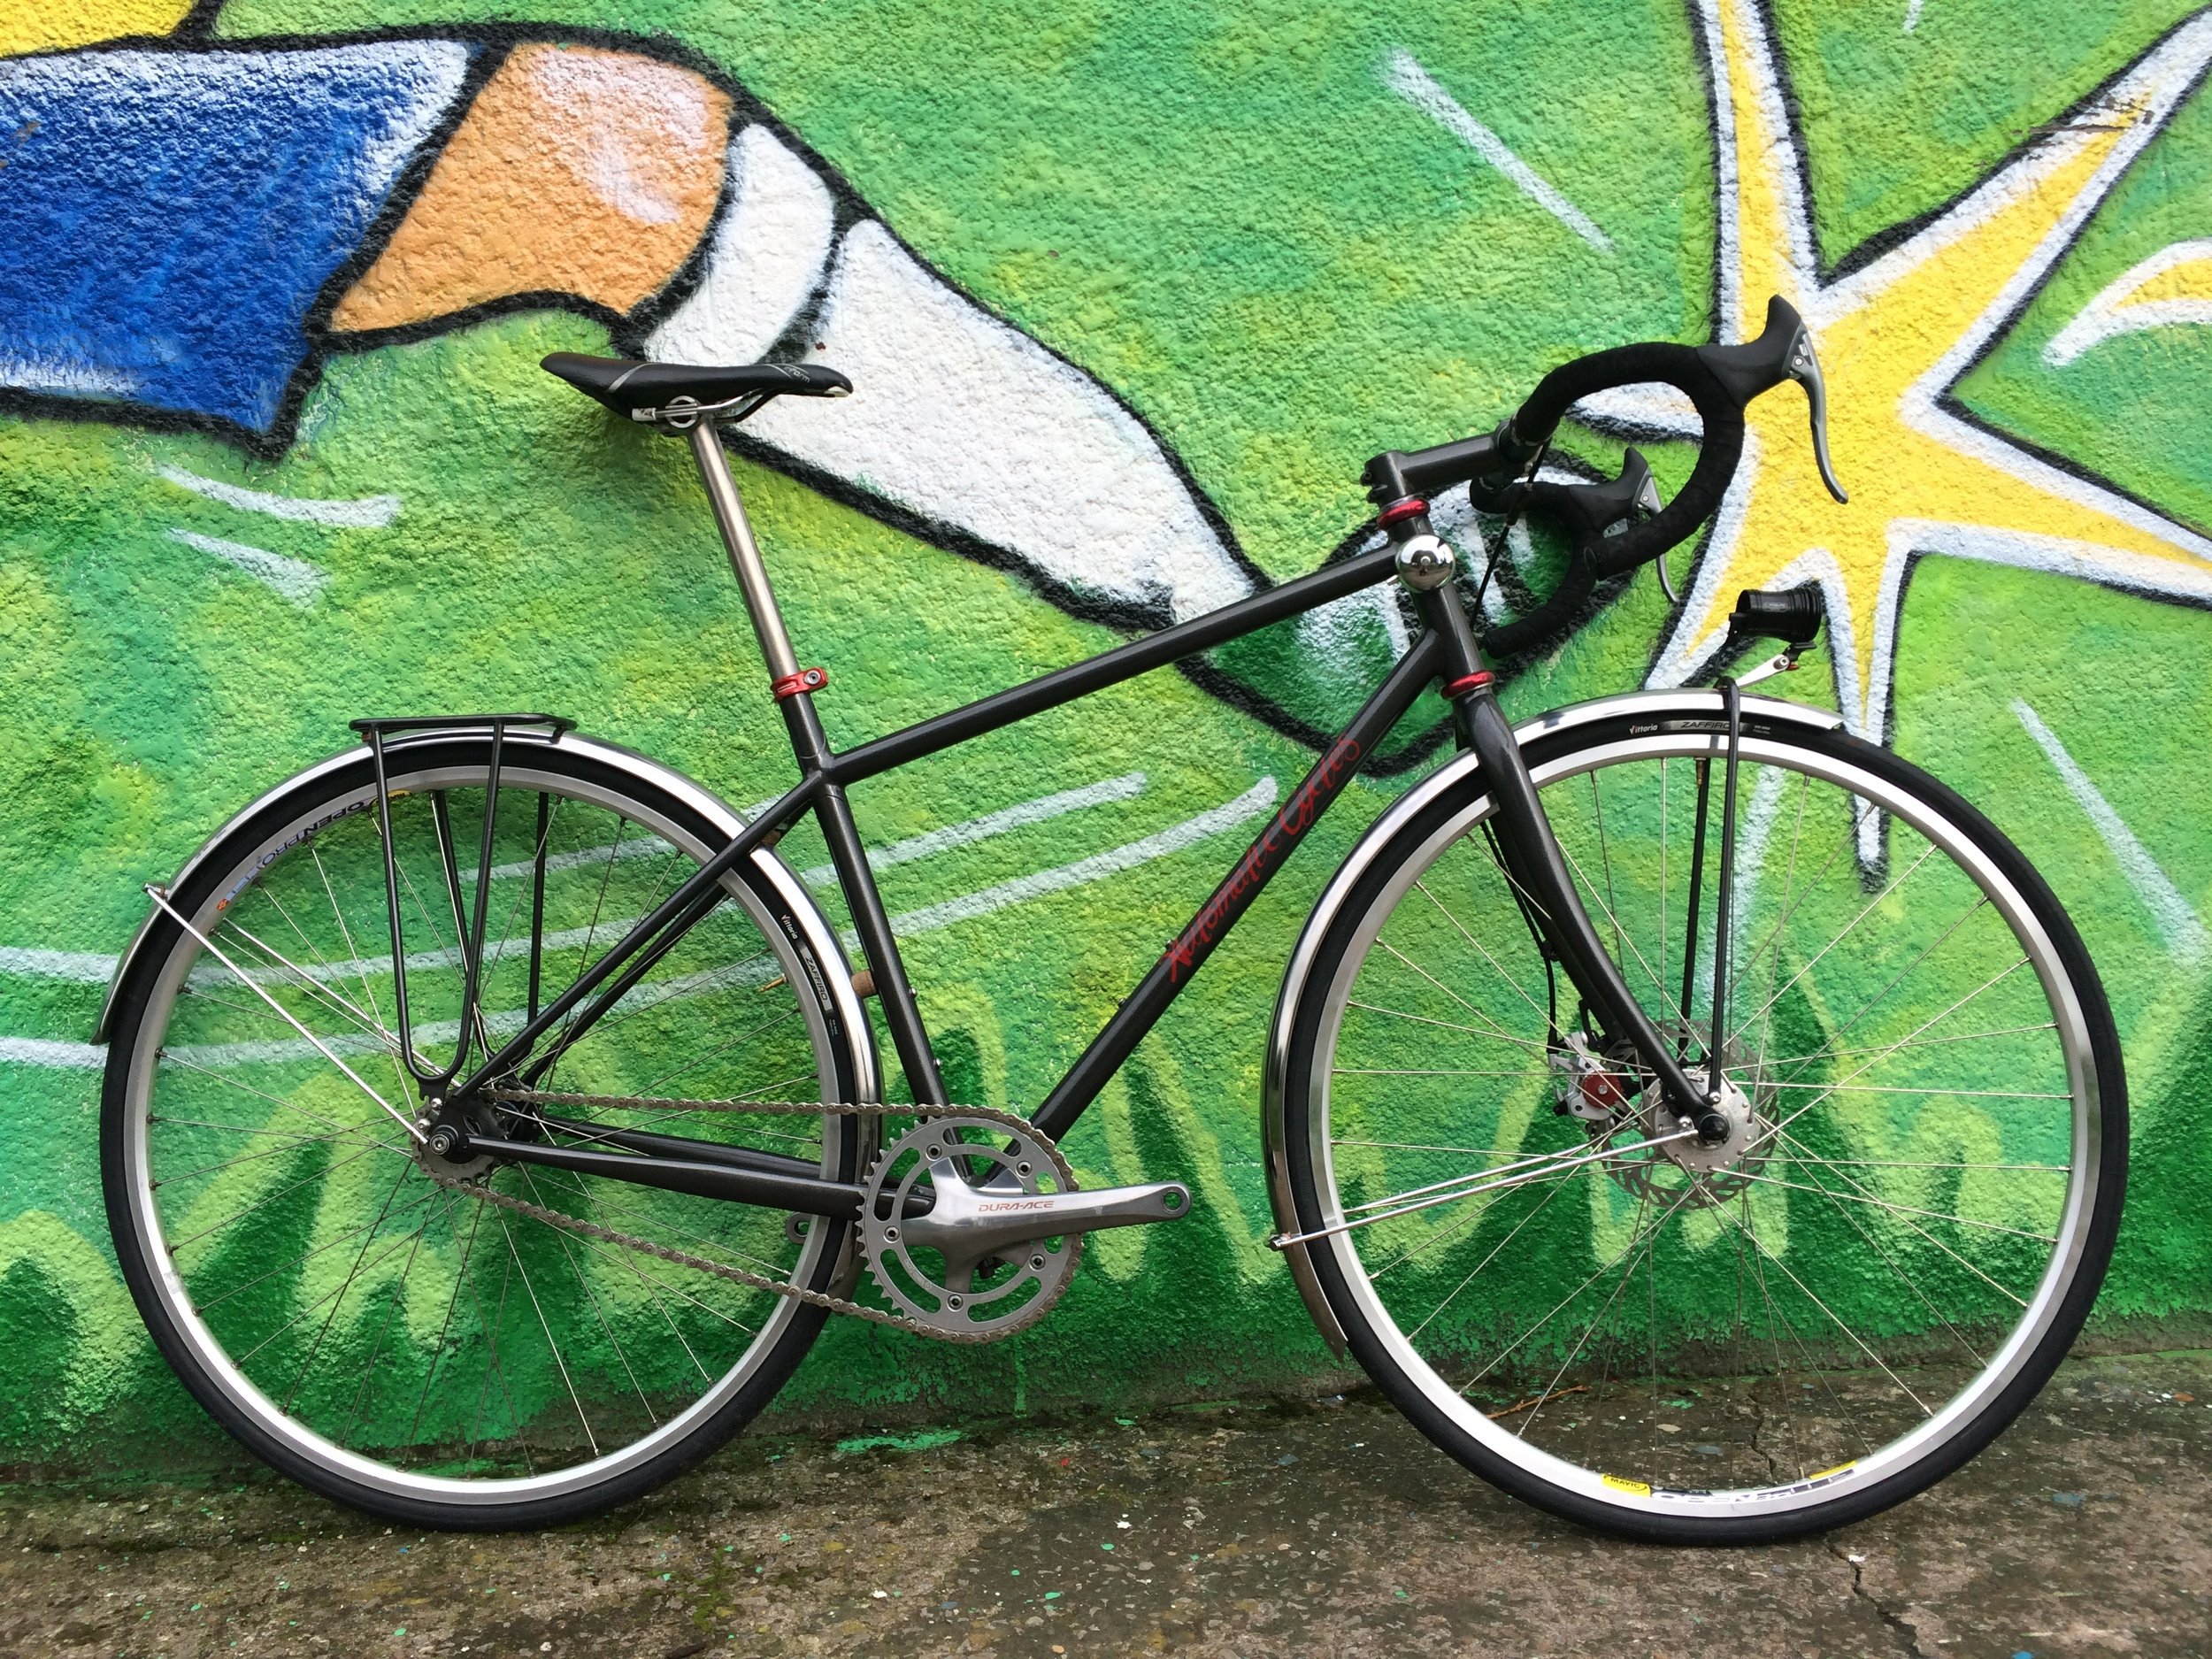 John's Commute bike  fixed gear compact frame for daily use on roads and dirt tracks. Custom built rack and Exposure Revo mount.